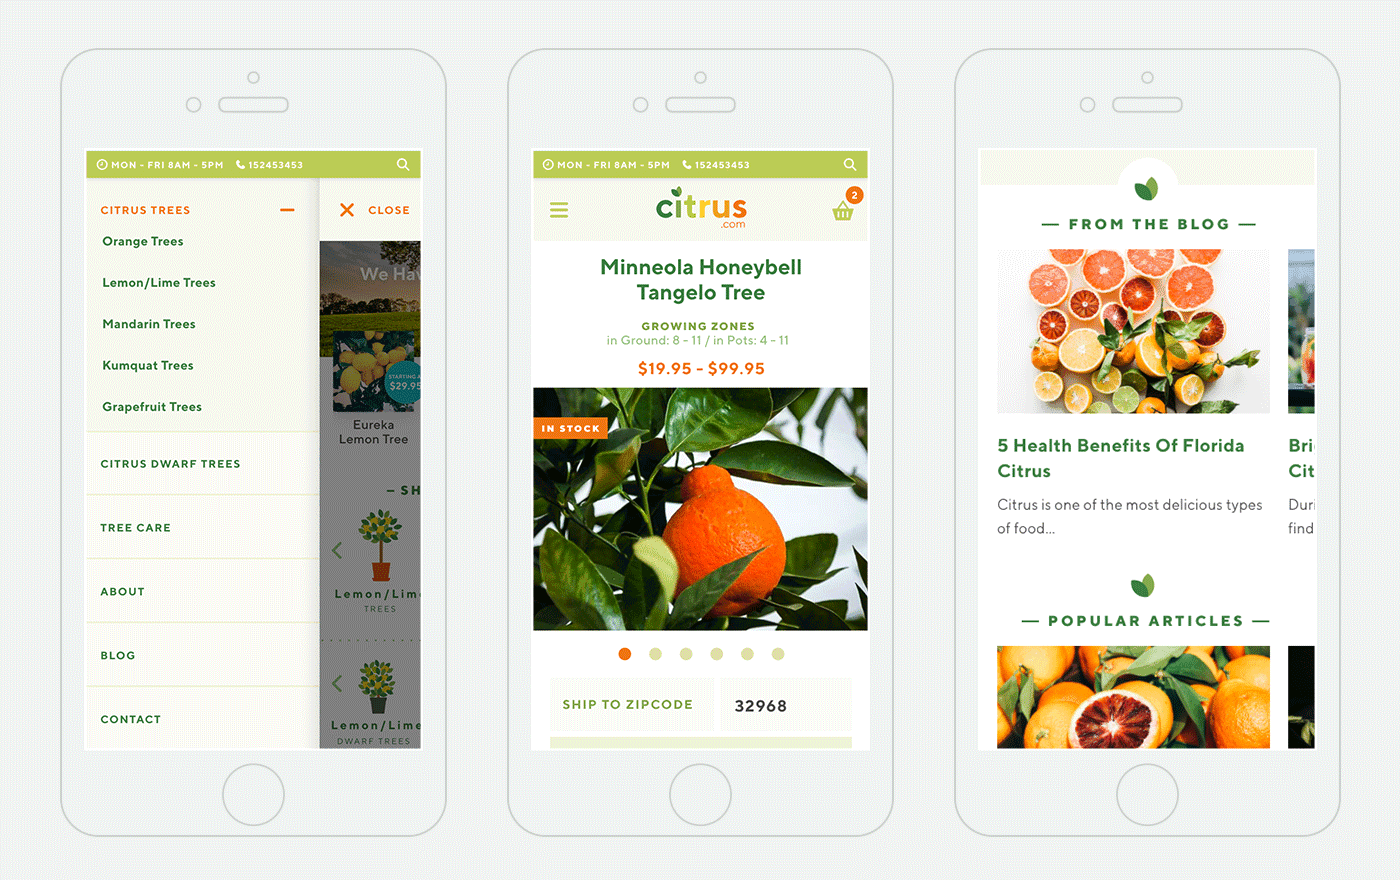 Some of the pages of the Citrus.com of the  mobile version of the website template design